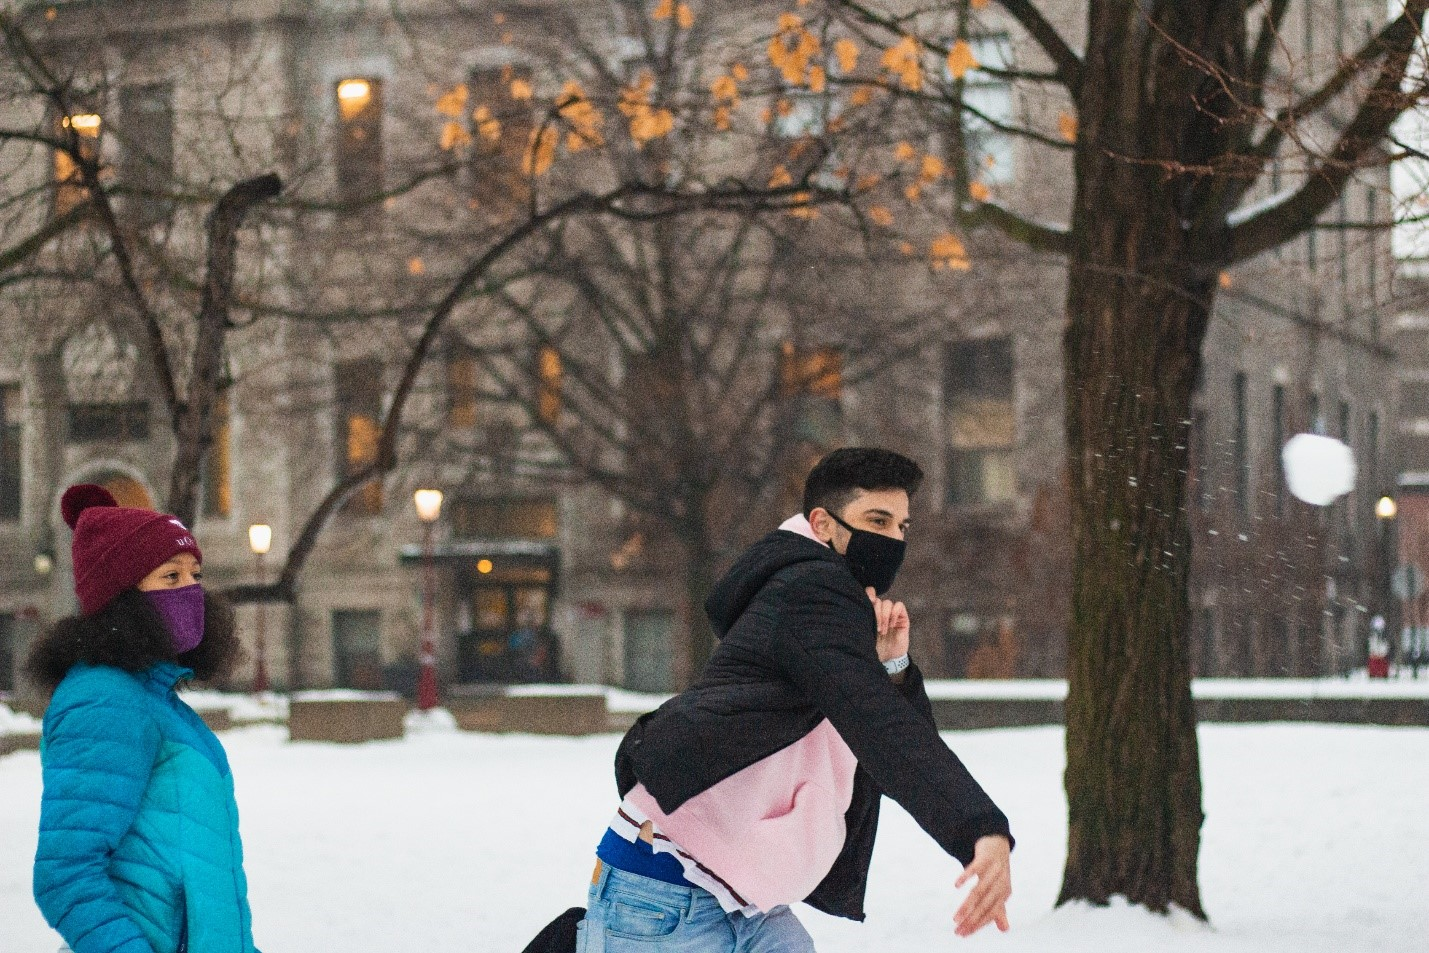 Two people throwing snow balls.